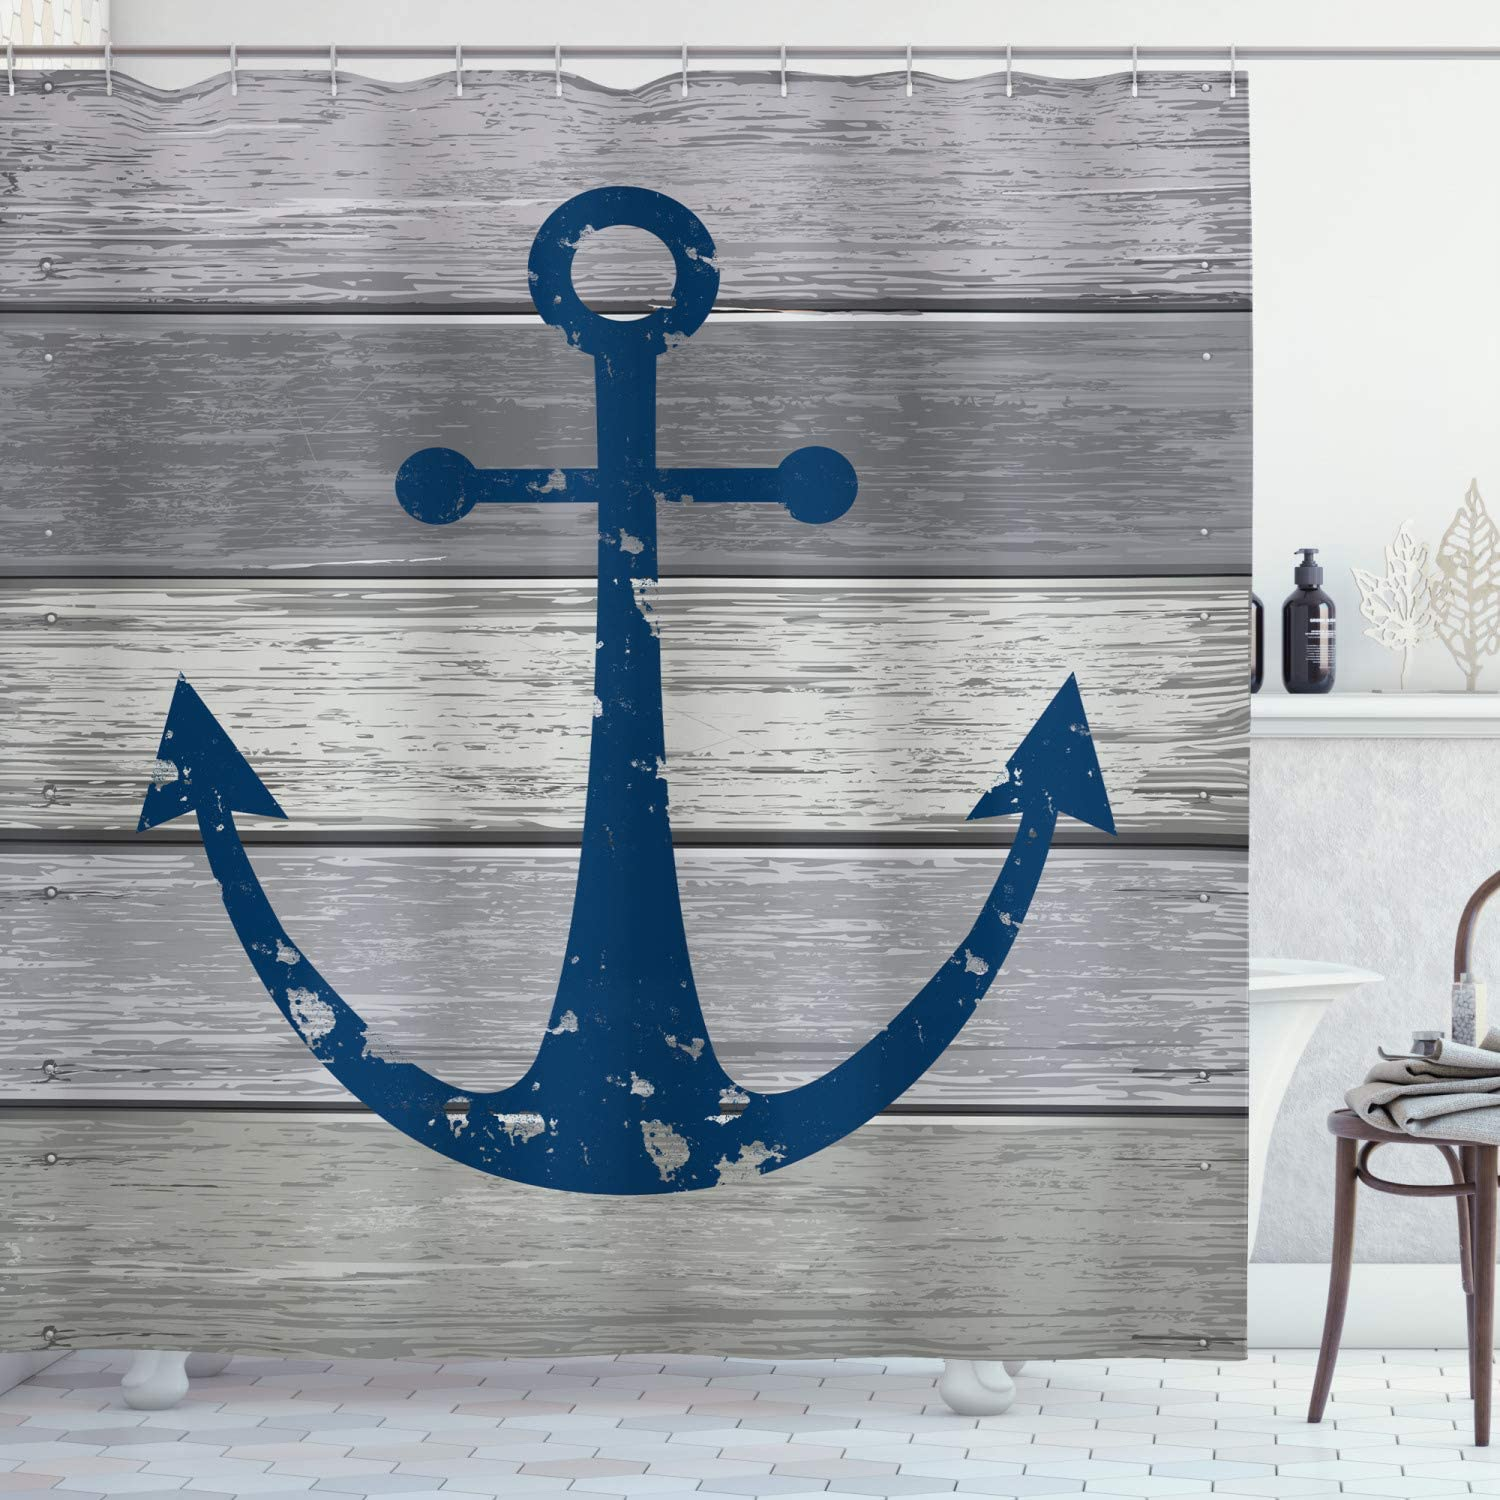 Ambesonne Anchor Shower Curtain, Timeworn Rustic Nautical Maritime Colored Symbol on Grunge Wooden Planks, Cloth Fabric Bathroom Decor Set with Hooks, 70